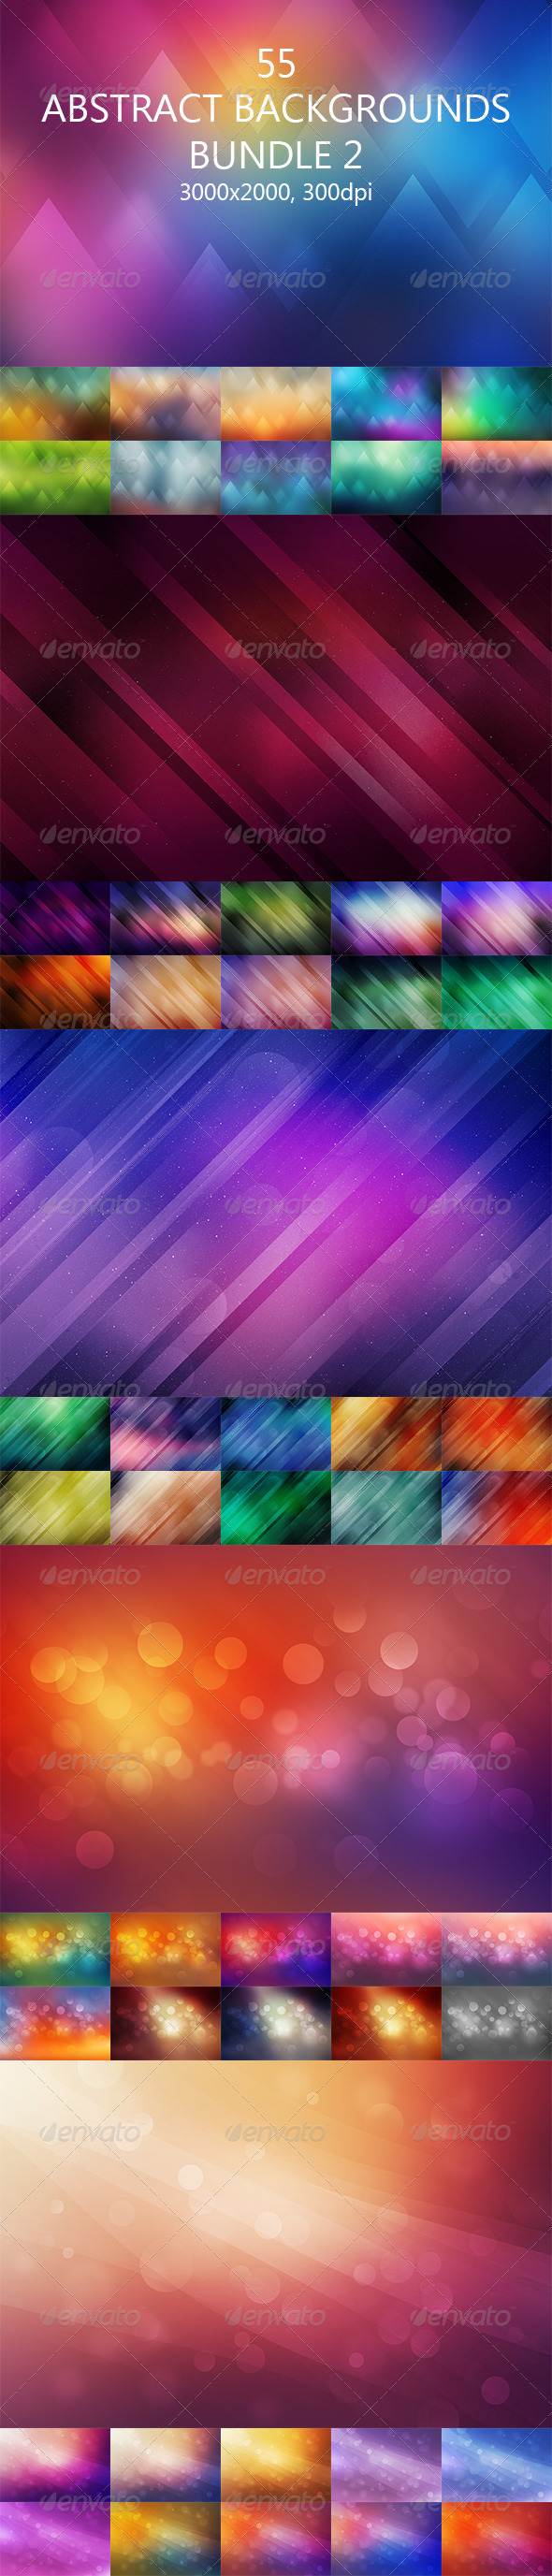 GraphicRiver 55 Abstract Backgrounds Bundle 2 8625597